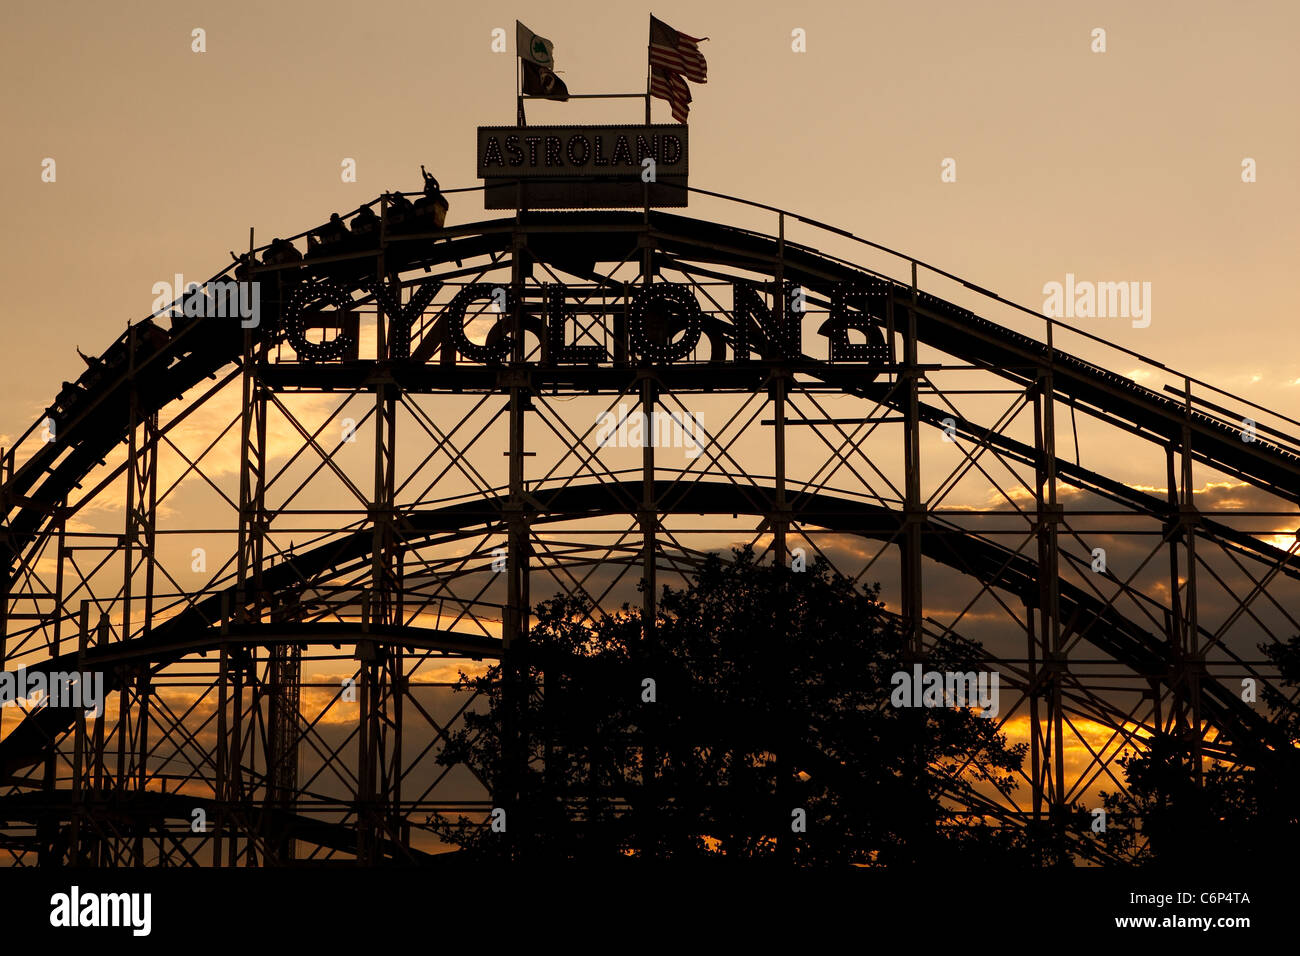 The Sun Set On The Coney Island Cyclone Roller Coaster On Coney Stock Photo Alamy